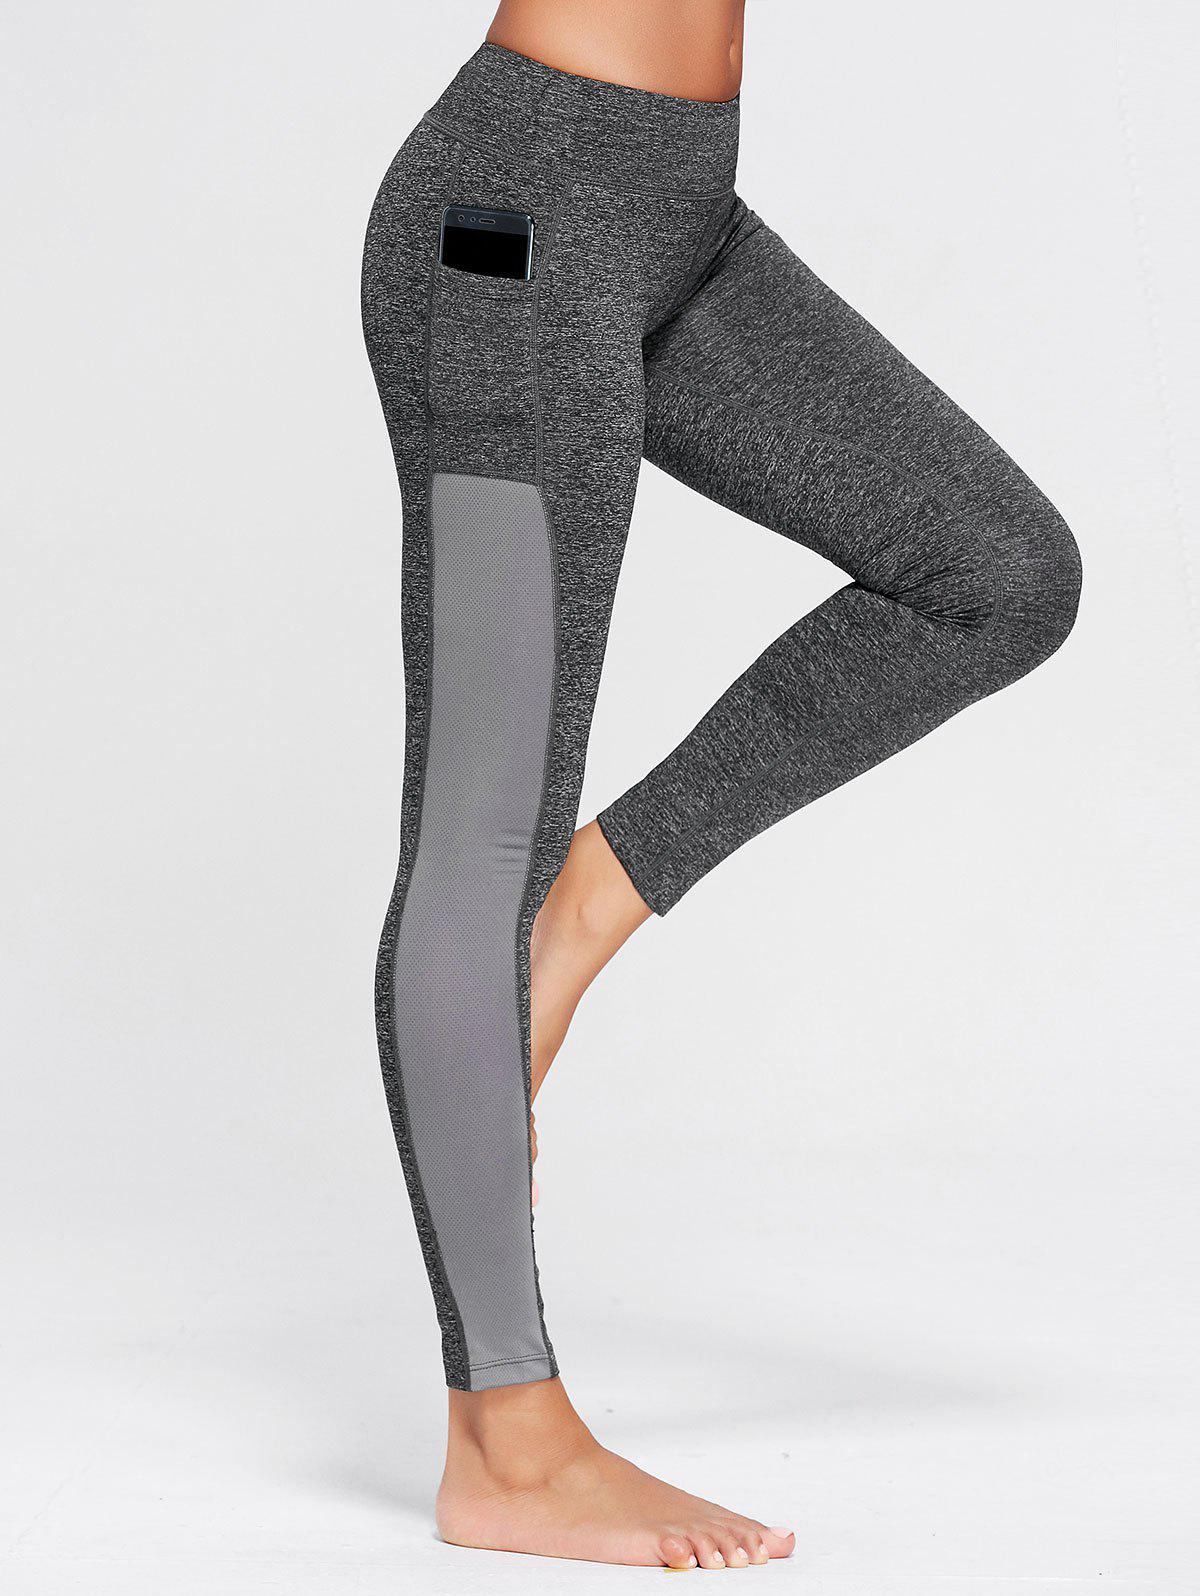 Stretchy Side Pocket Workout LeggingsWOMEN<br><br>Size: S; Color: GRAY; Style: Active; Length: Ninth; Material: Cotton Blends,Polyester,Spandex; Fit Type: Skinny; Waist Type: High; Closure Type: Elastic Waist; Pattern Type: Others; Pant Style: Pencil Pants; Elasticity: Elastic; Weight: 0.2400kg; Package Contents: 1 x Leggings;